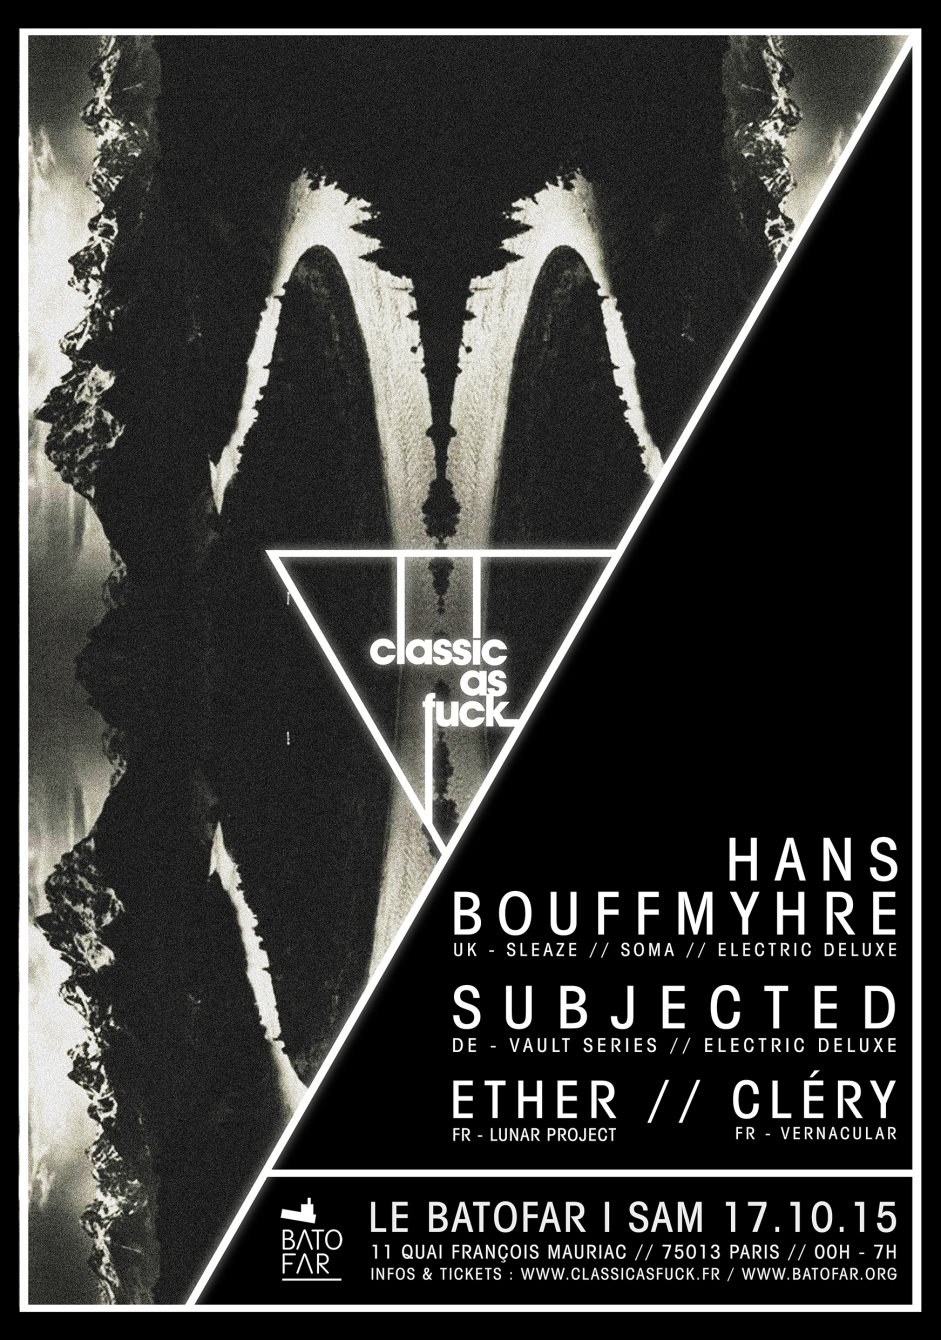 Classic As Fuck with Hans Bouffmyhre & Subjected - Flyer front